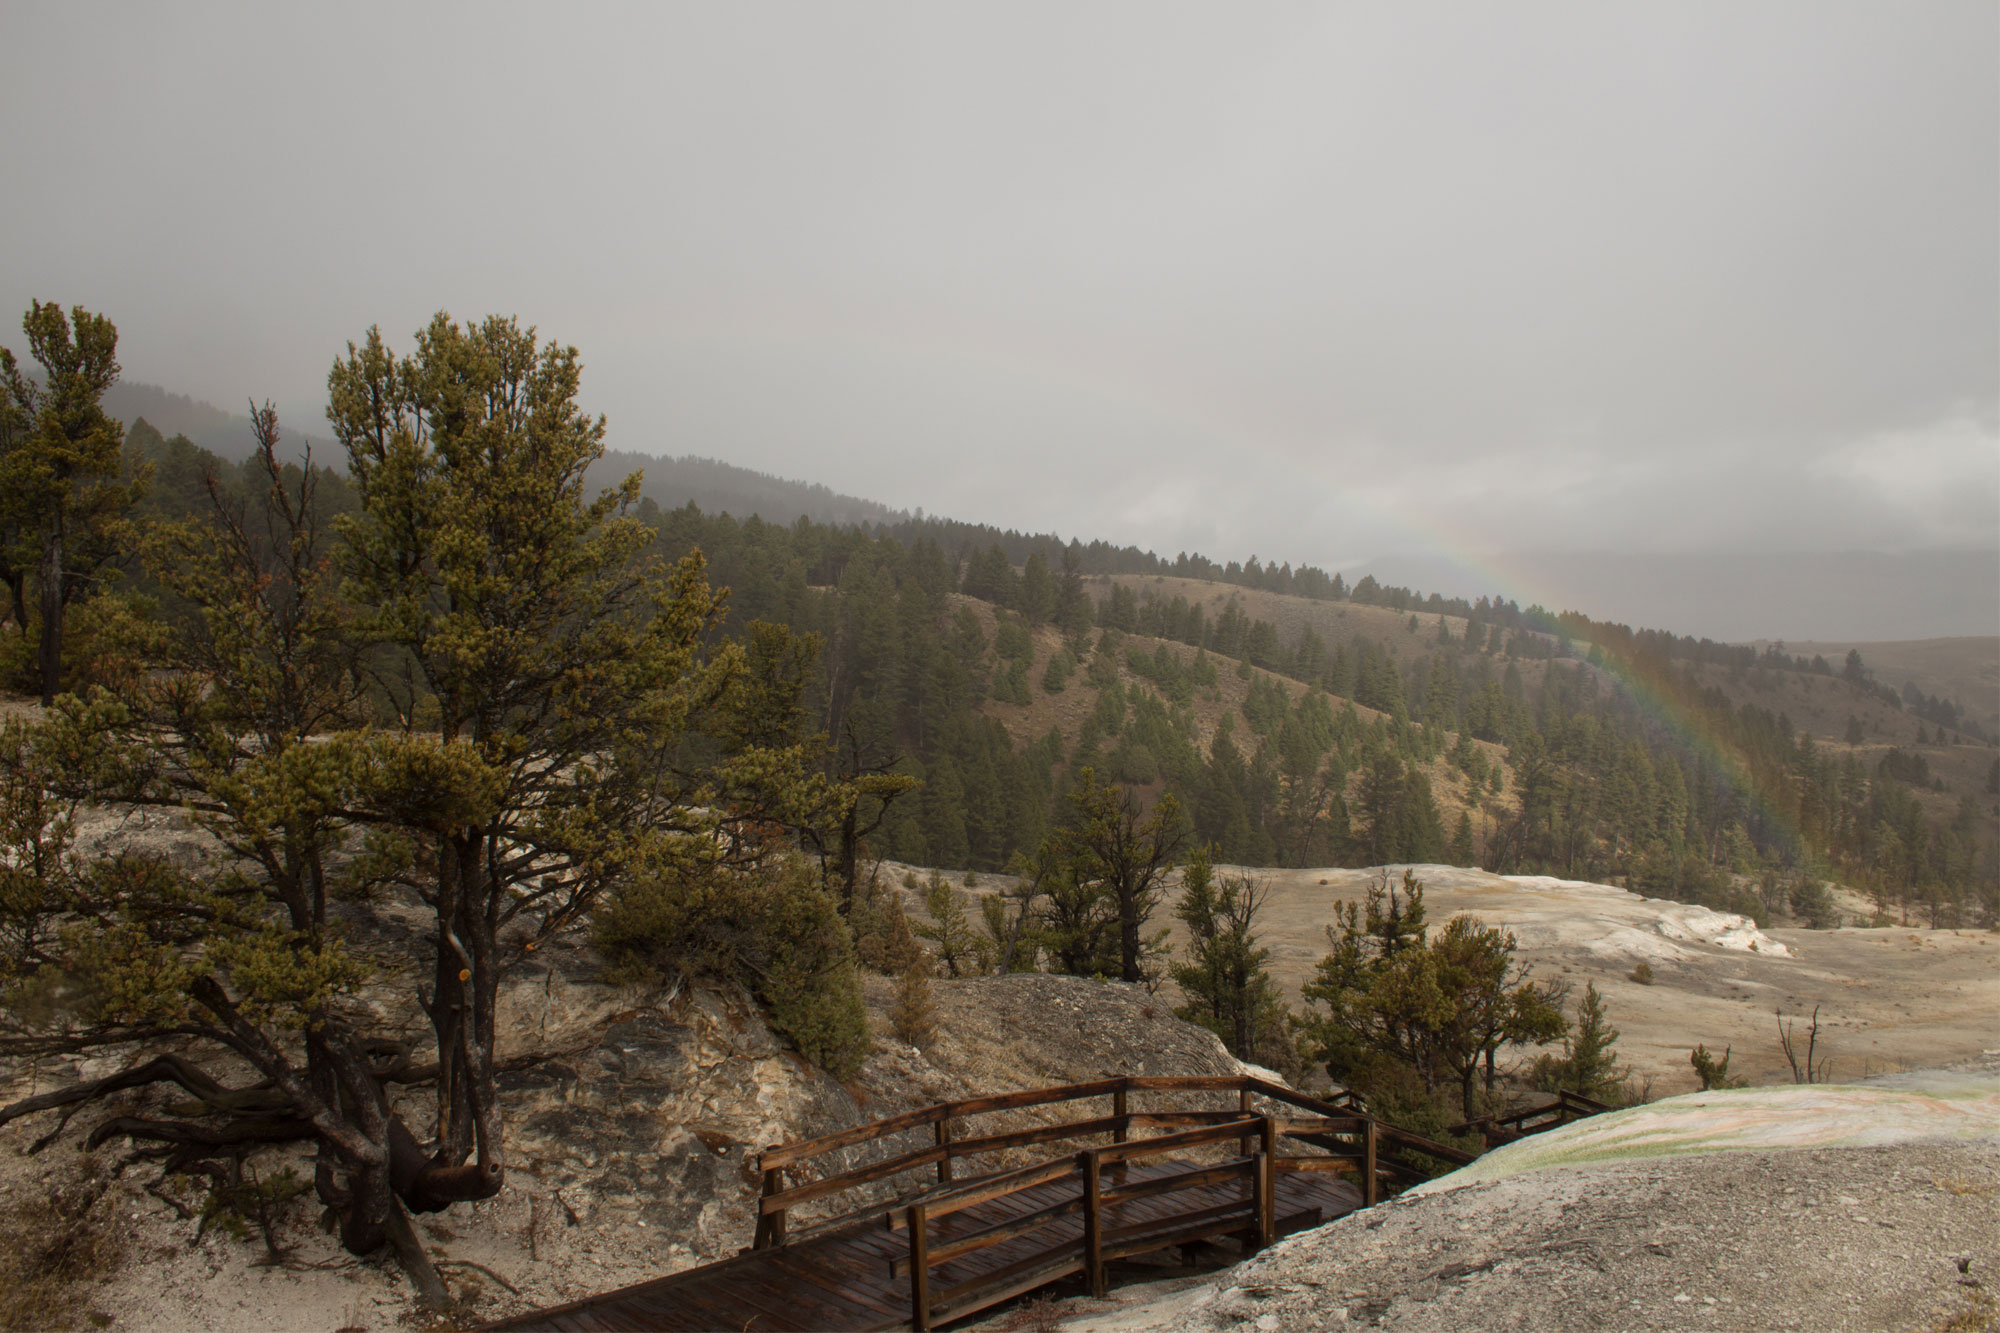 Top of Mammoth Hot Springs, Yellowstone National Park